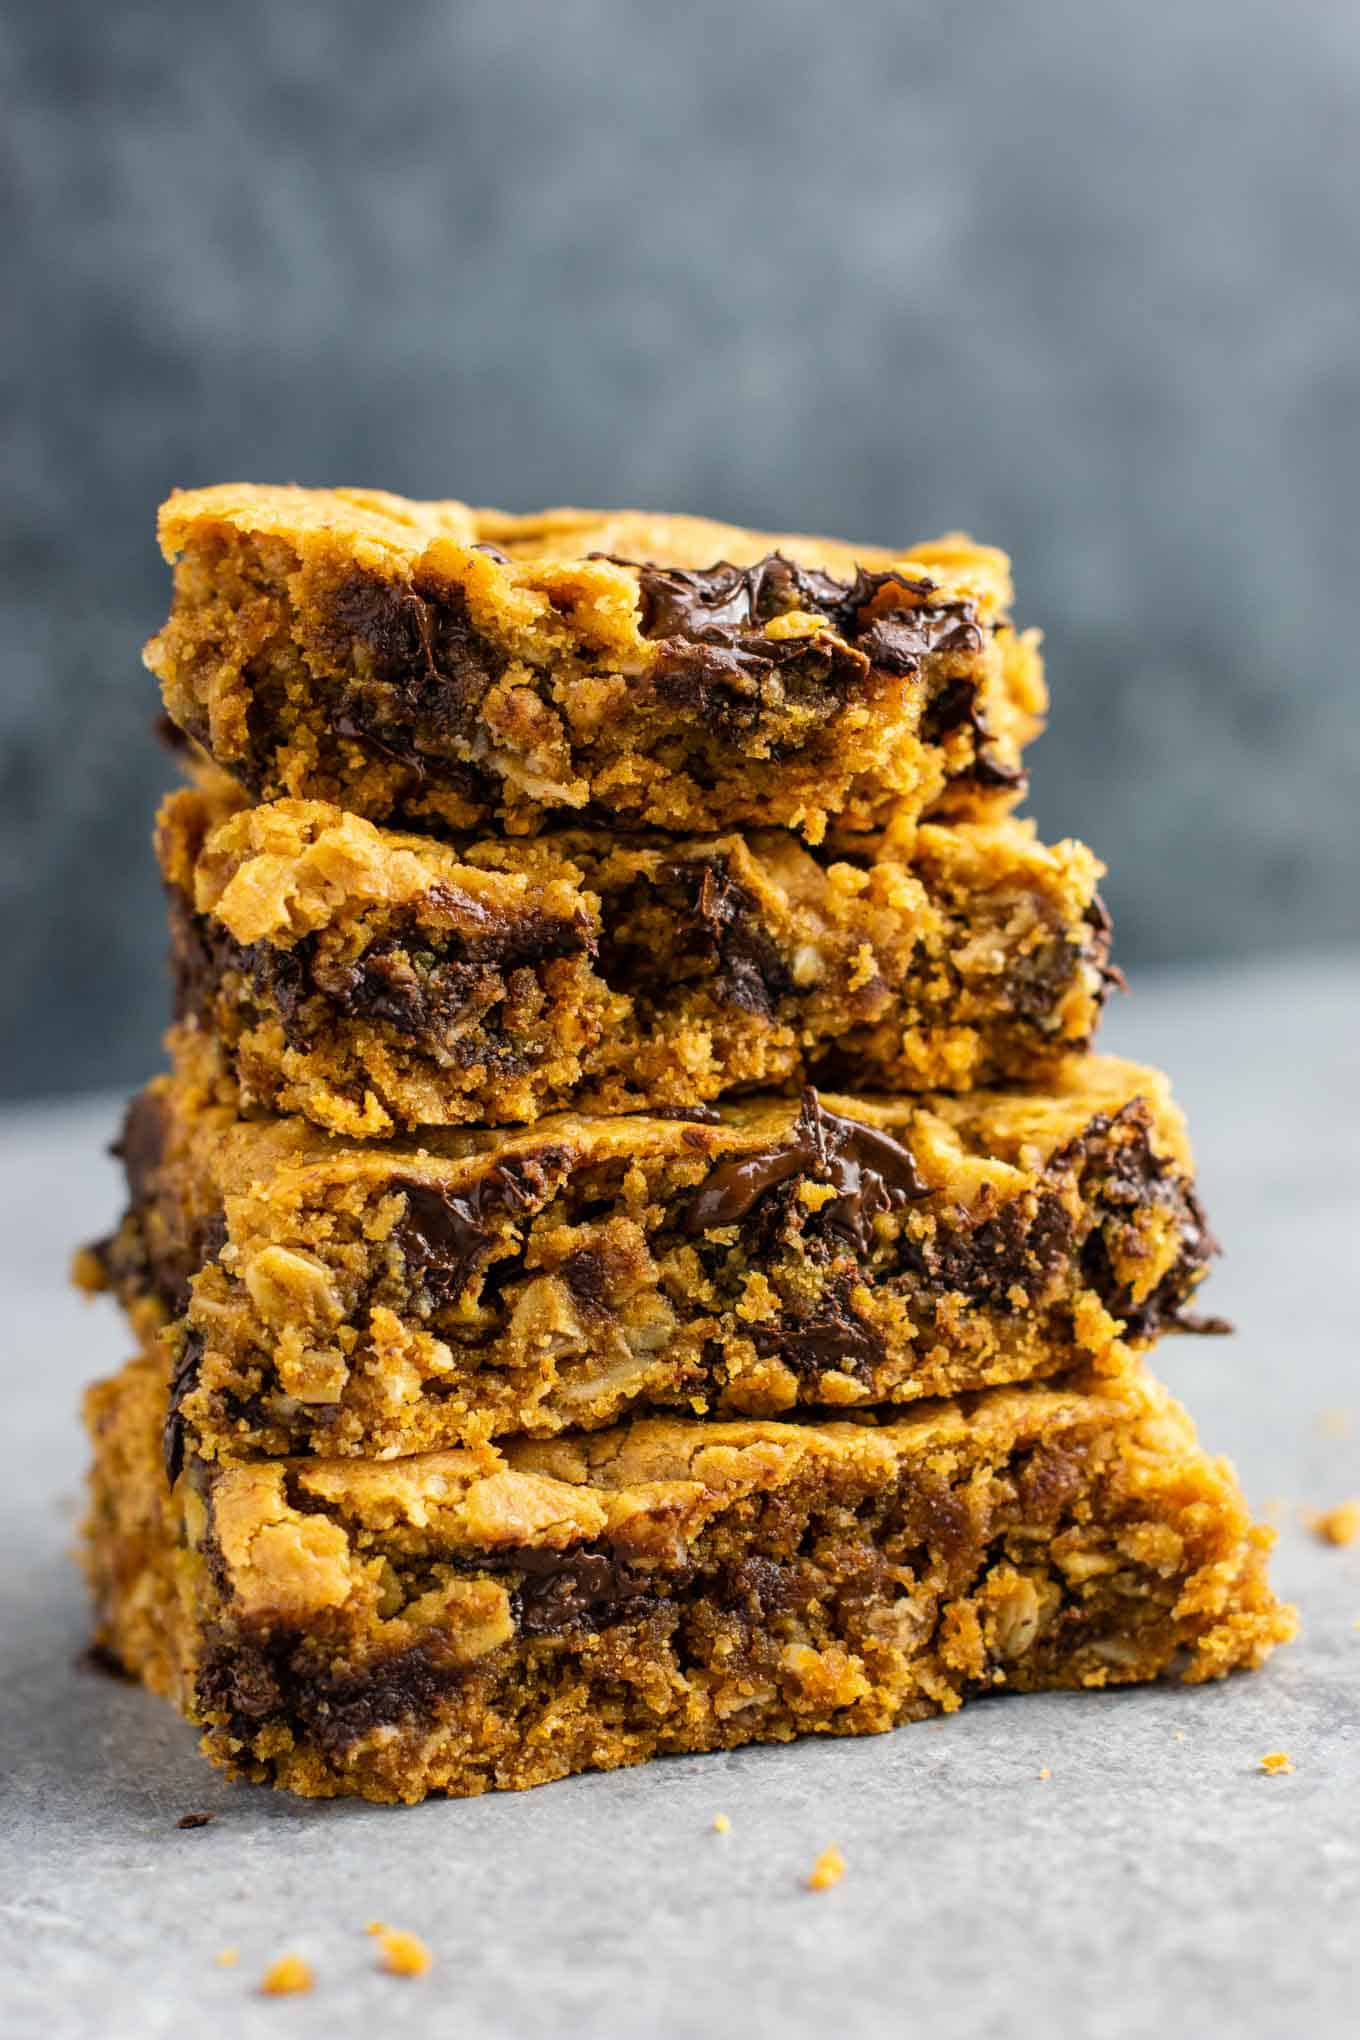 Gluten free cookie bars that are secretly healthy but taste incredibly decadent. They taste like a fancy restaurant dessert! #glutenfree #cookiebars #dessert #dairyfree #healthydessert #glutenfreedessert #glutenfreerecipe #glutenfreecookiebars